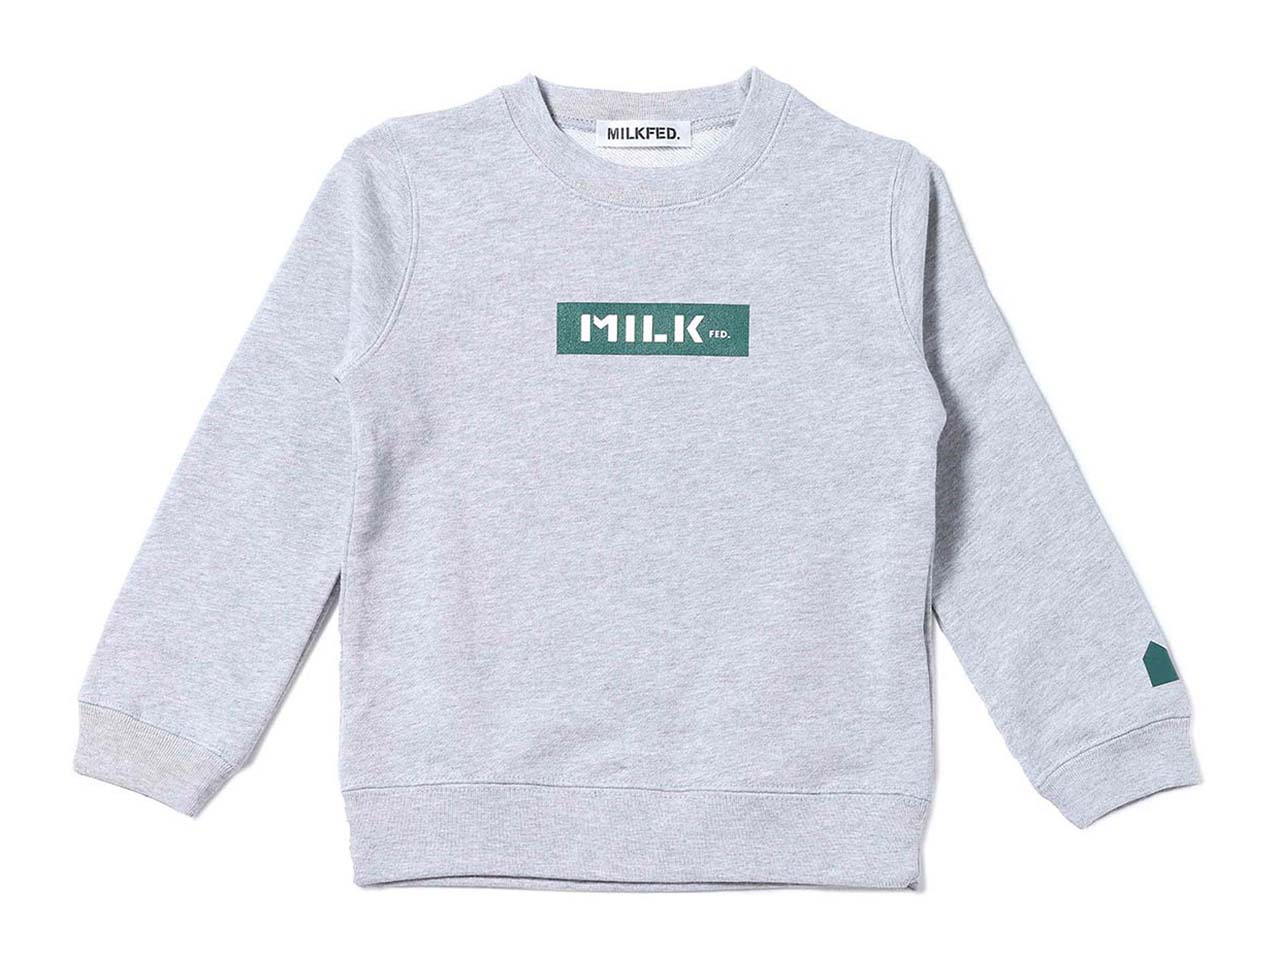 IN THE HOUSE×MILKFED. KIDS SWEAT GREEN(ith-0093)【インザハウス×ミルクフェド】【キッズ】【コラボレーション】【コラボアイテム】【ストリート】【HO_1】